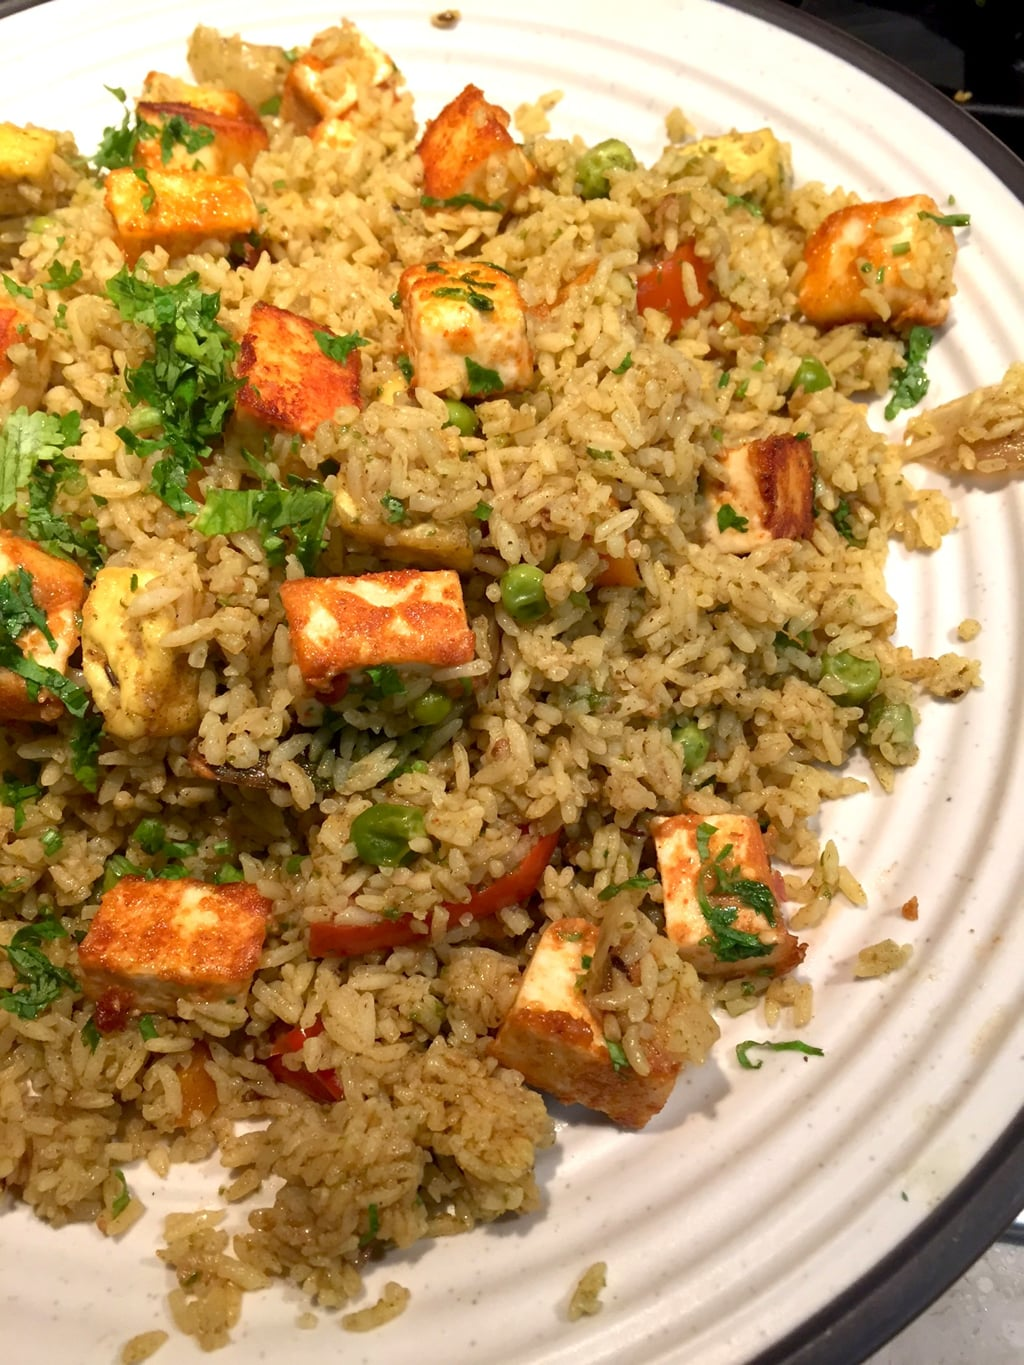 Paneer pulao using a special pulav masala recipe saffron trail pulao is usually my go to dish when i am running short of time or i cannot think of what to make for dinner rice is always comforting and a smattering of ccuart Choice Image